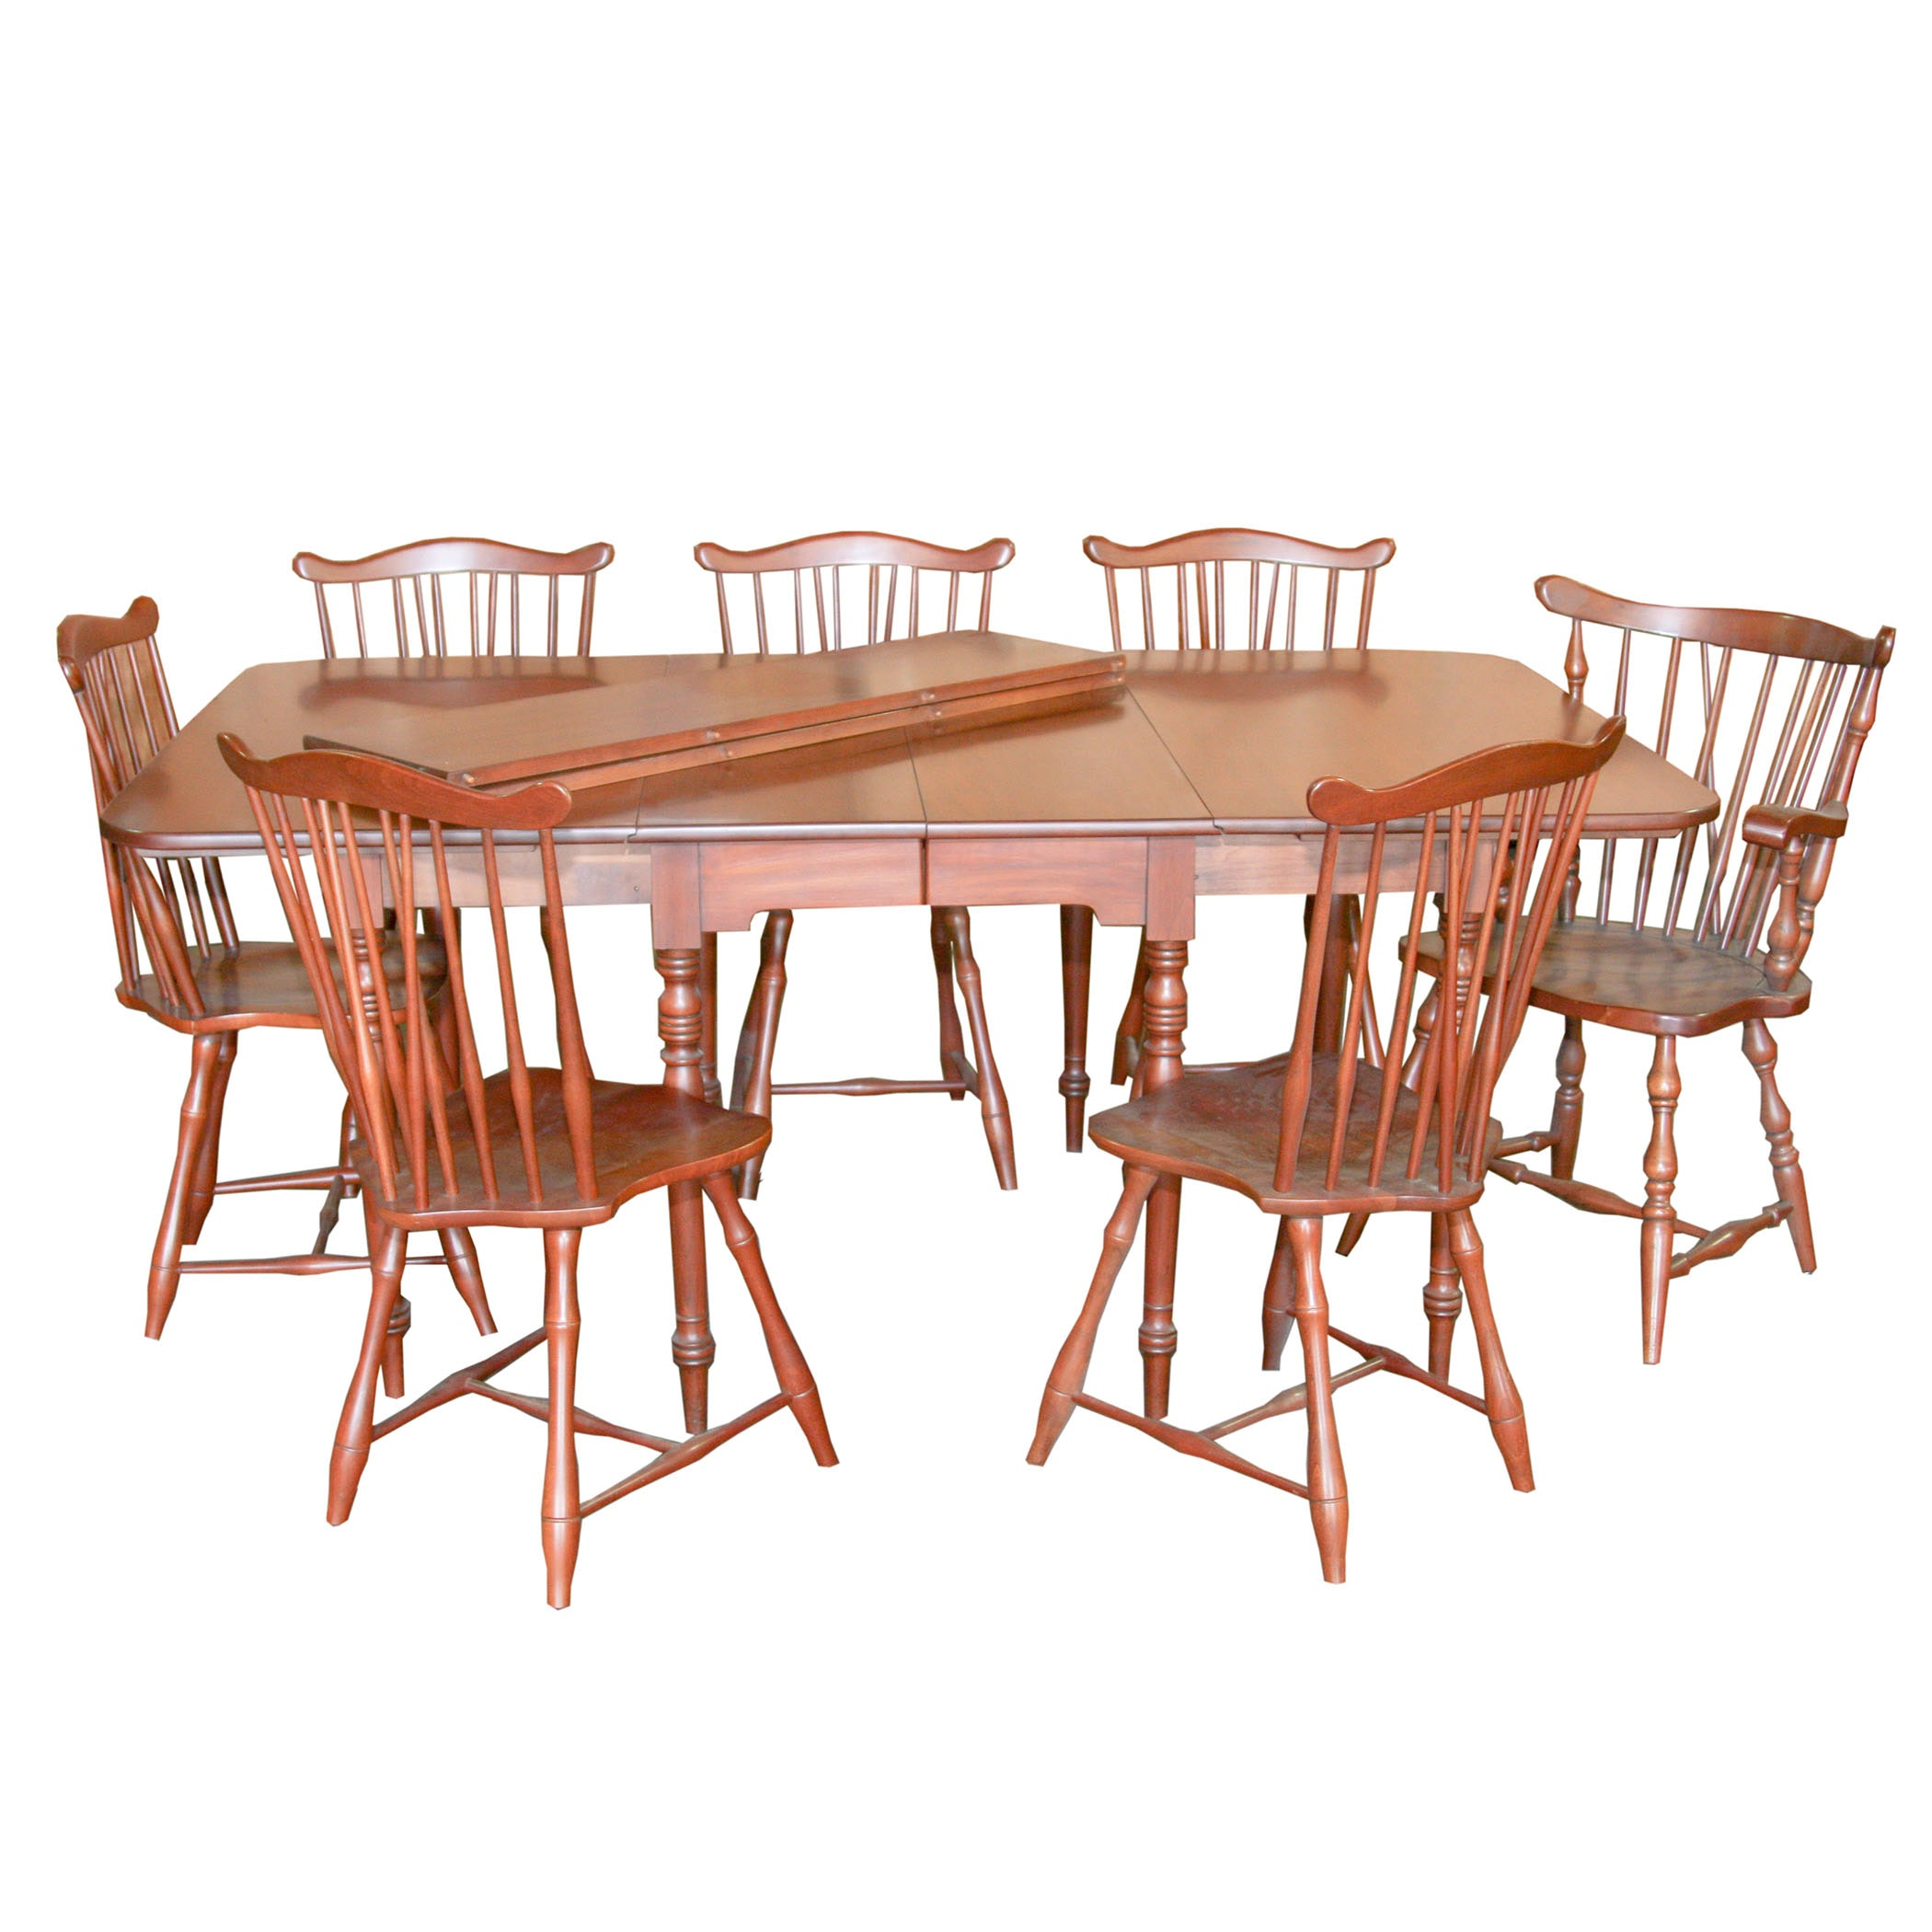 Henkel-Harris Expandable Dining Table with Chairs